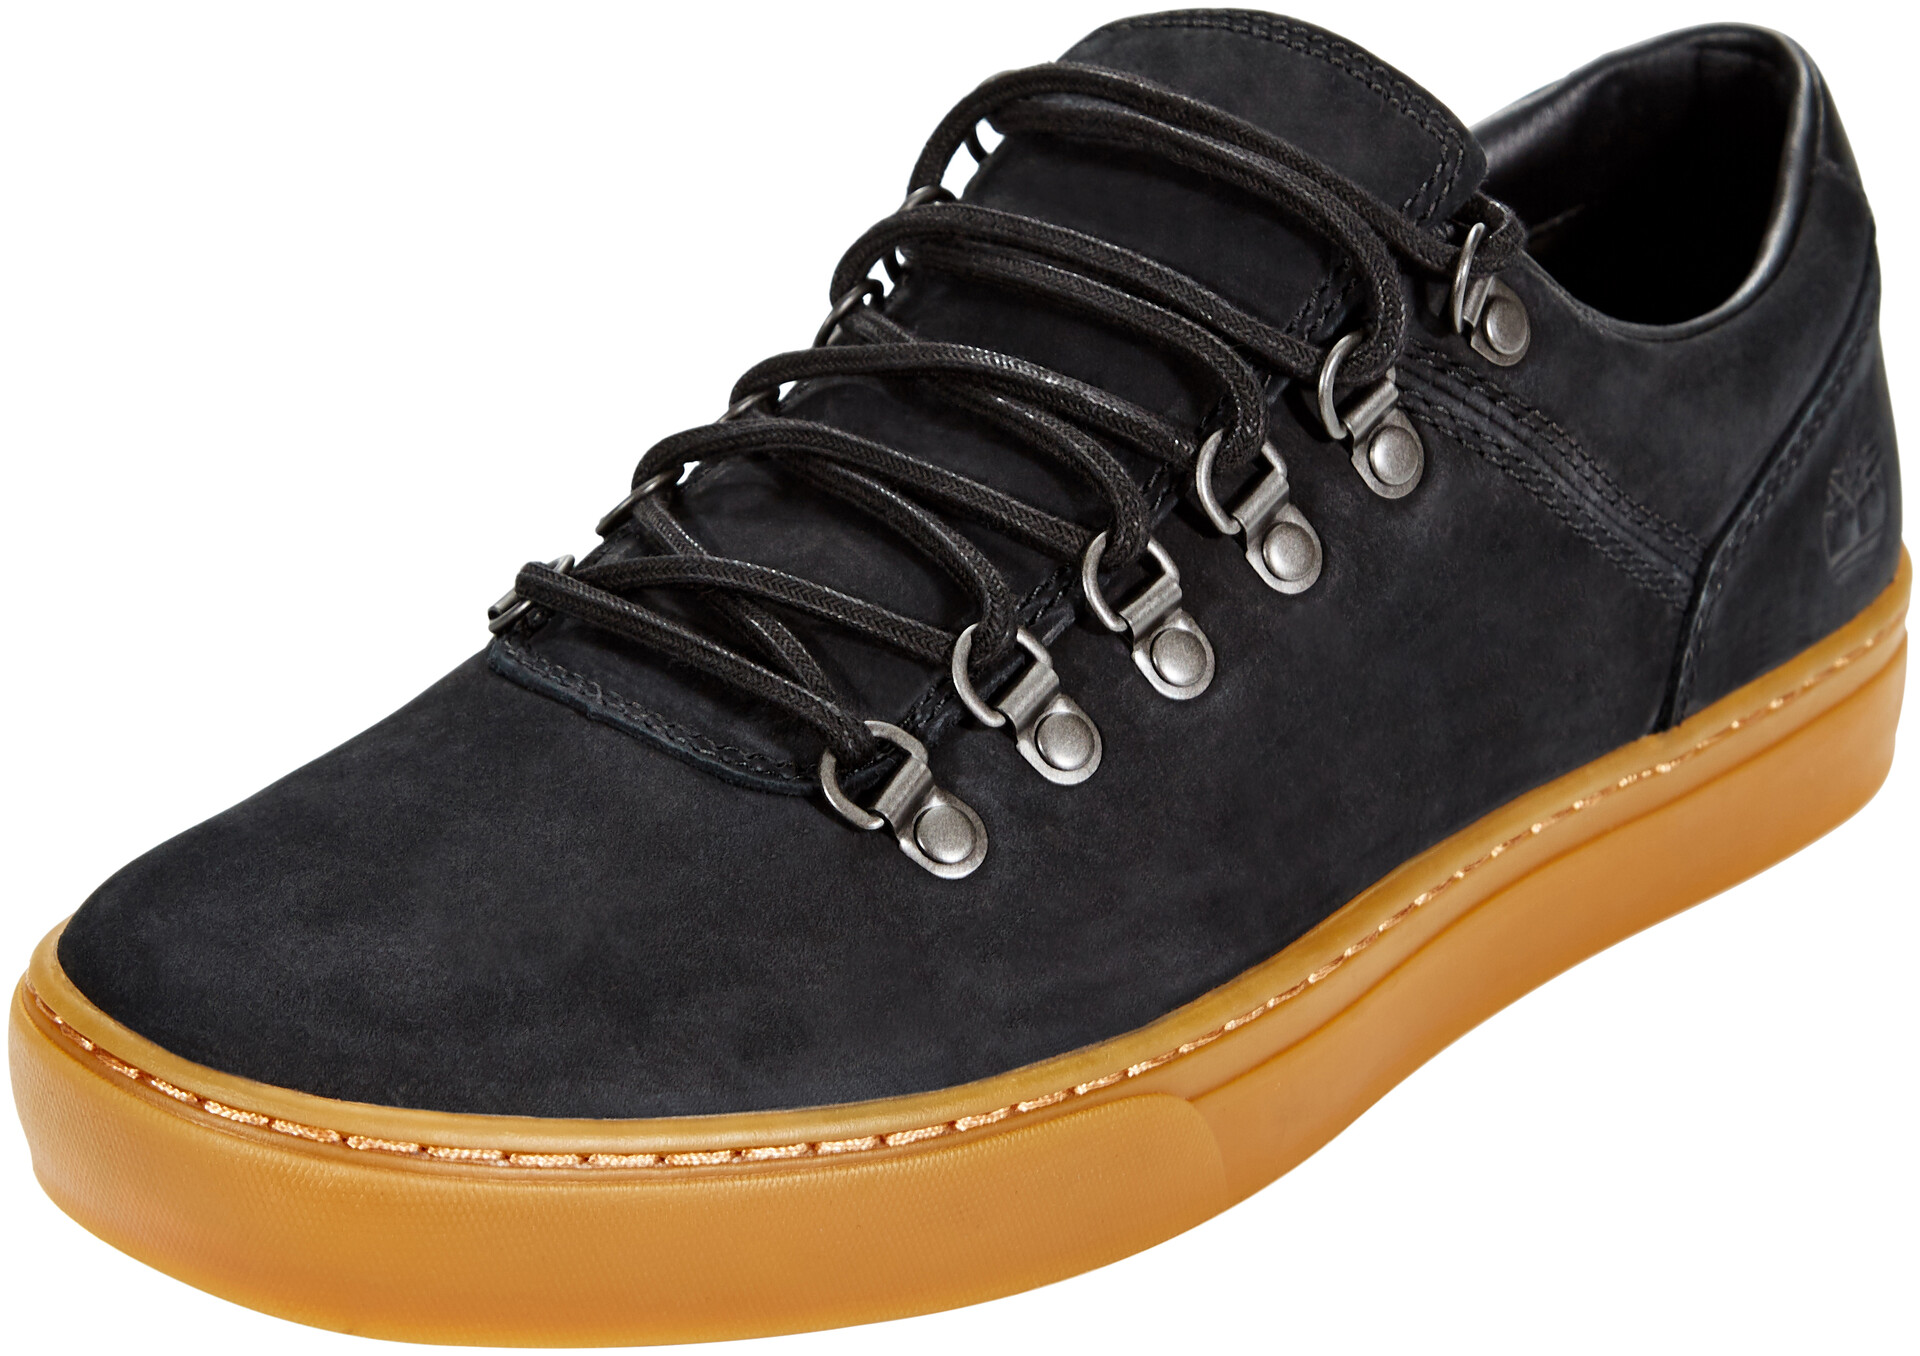 Chaussure Homme Timberland Adventure 2 Cupsole Alpine Oxford Chaussures Homme Noir